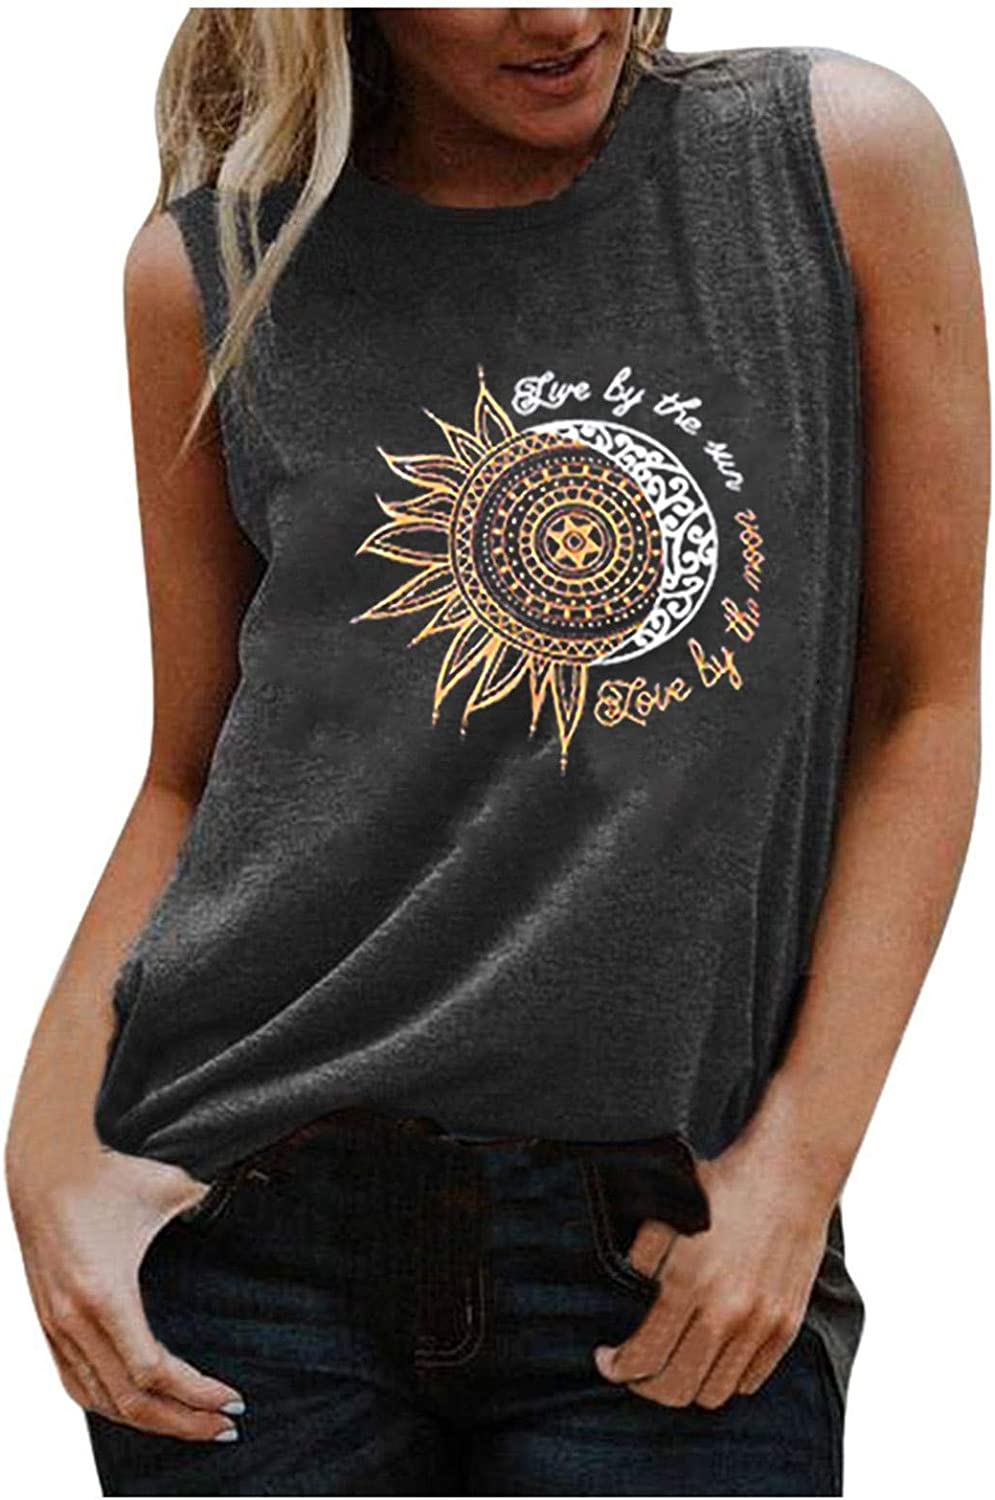 WomensSummerTops,Tank Tops for Women,Womens Workout Tops Casual Summer Shirts Sleeveless Tops Loose Camisoles Tees Shirts